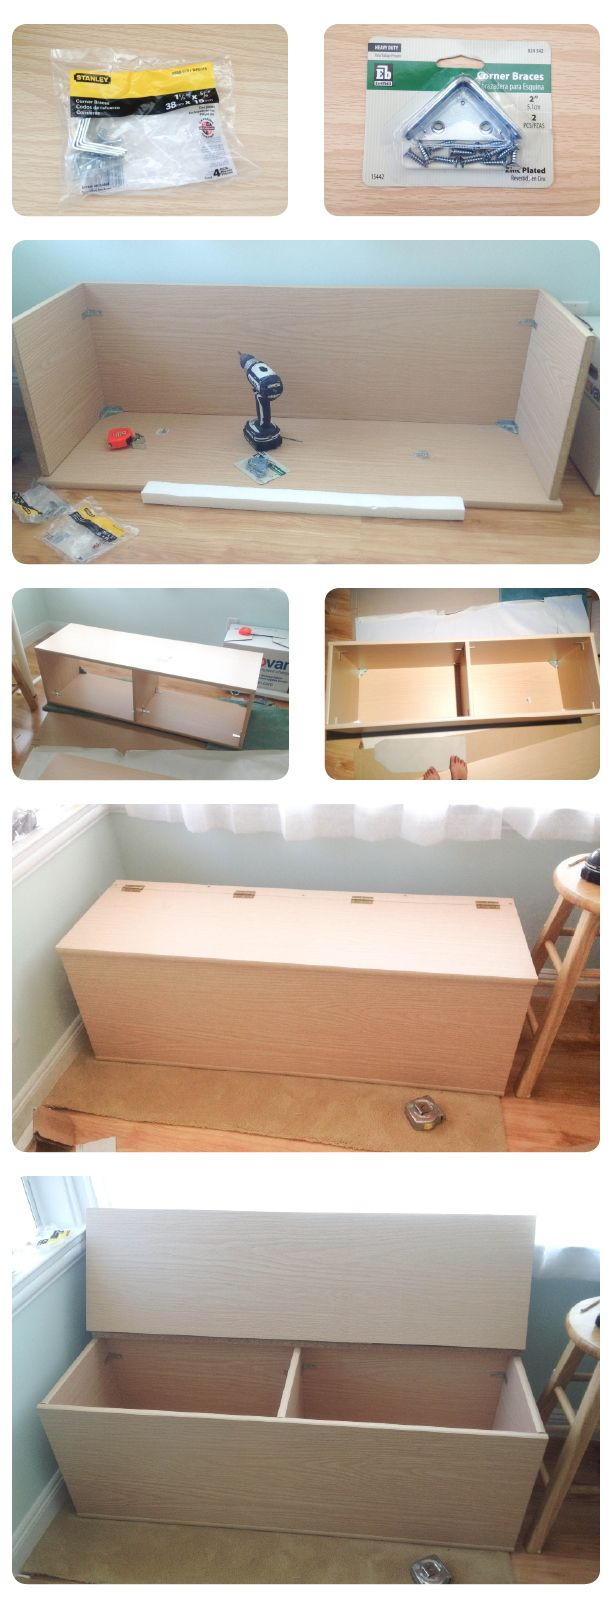 DIY Storage Bench. This looks really simple, would be a great idea for more storage and its a cute idea for window seating! Just make a pillow seat for the top